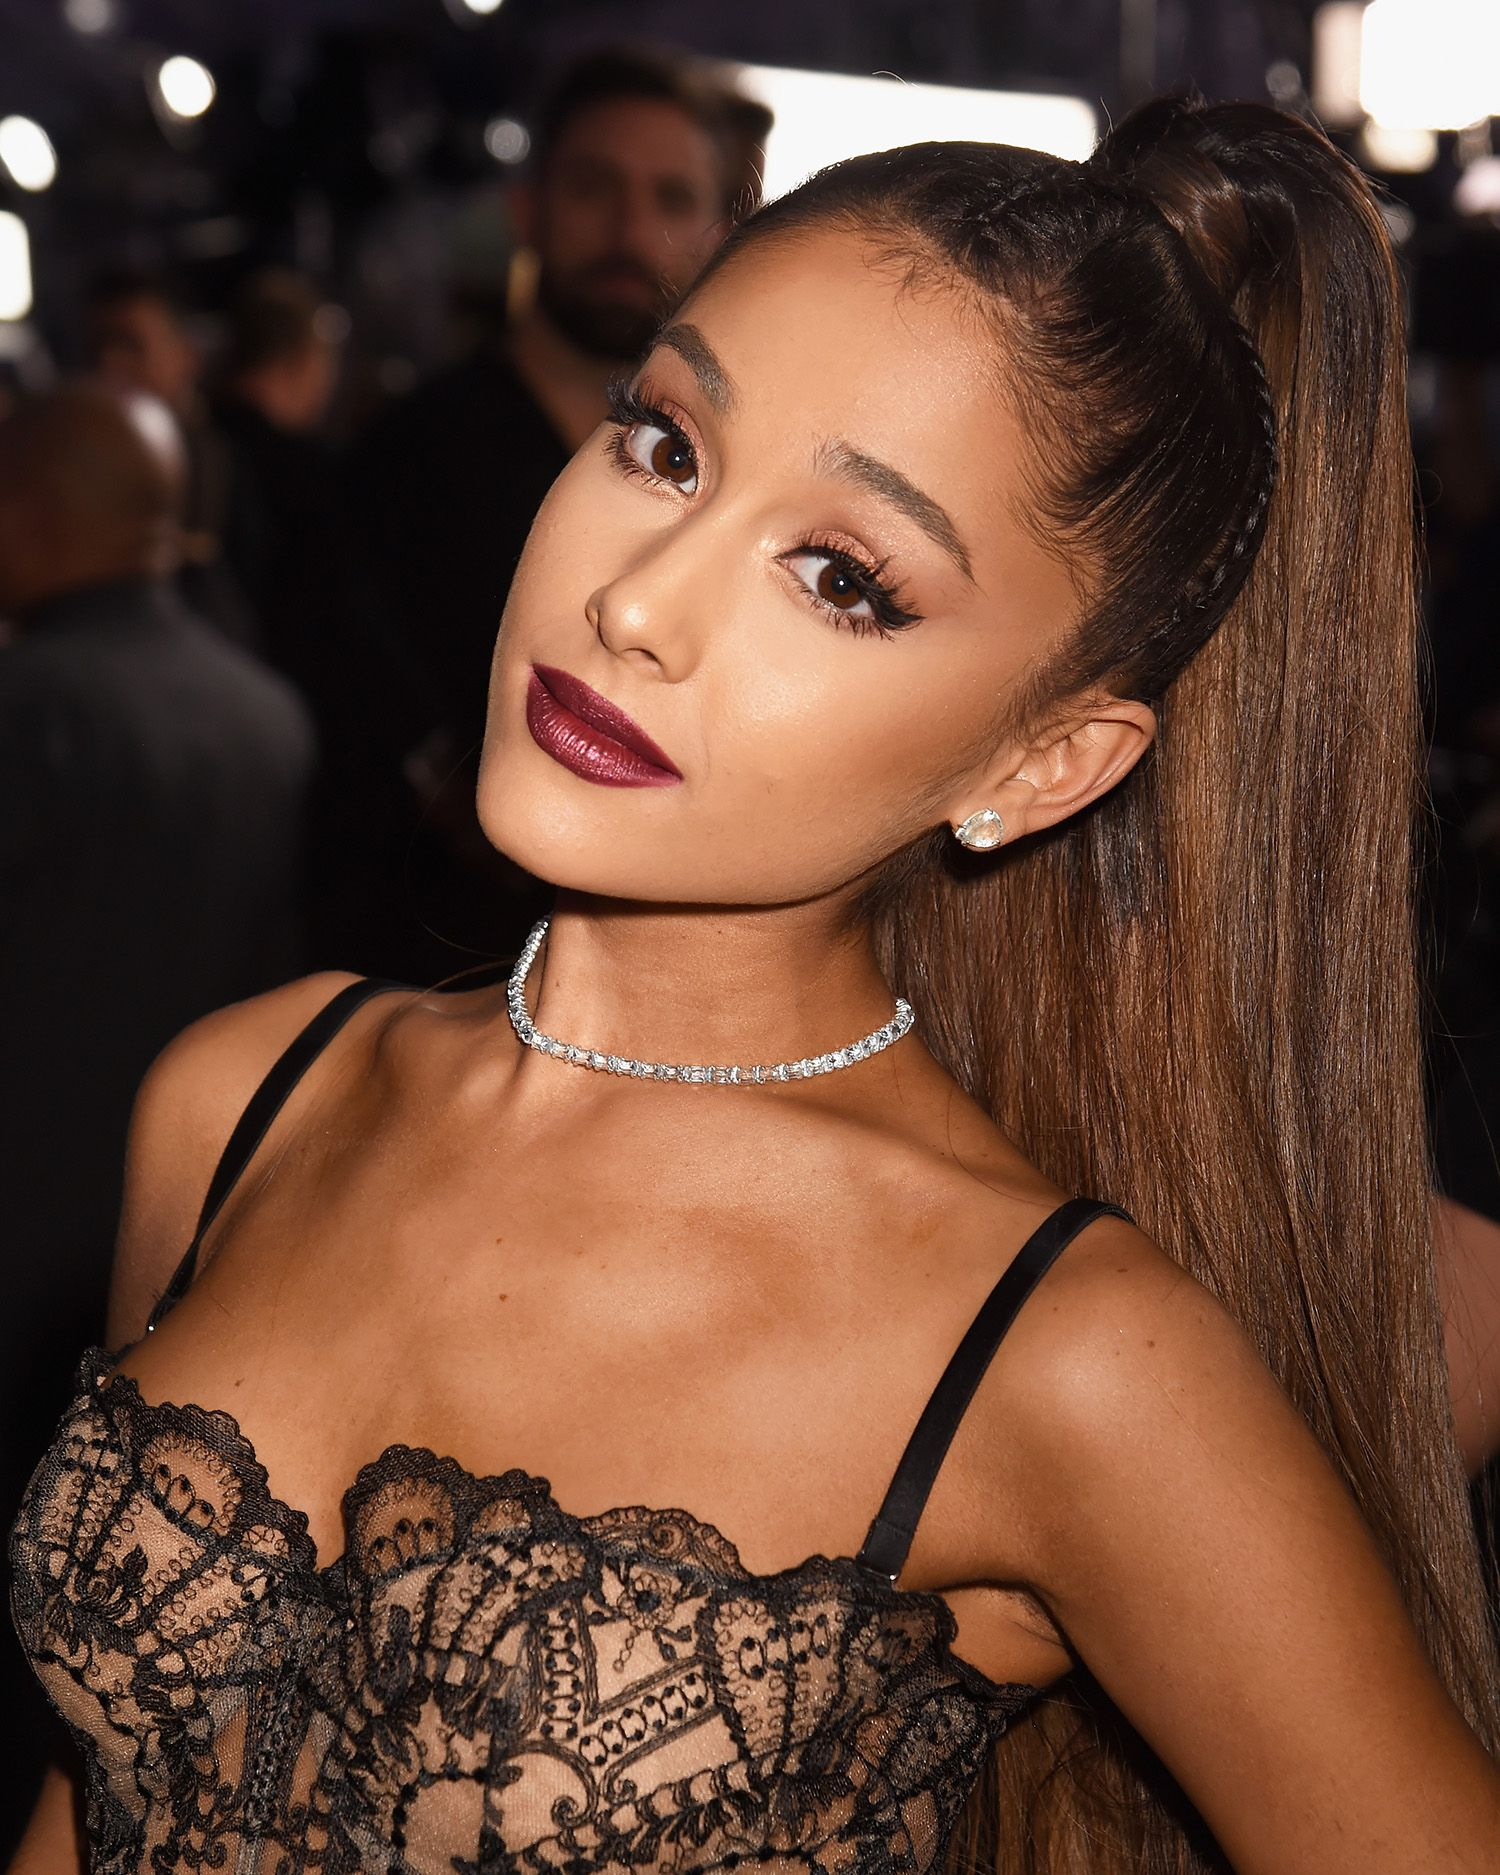 """<p>Similarly, Grande is absolutely certain we are not alone. """"Of course,"""" she <a href=""""http://www.complex.com/music/2013/11/ariana-grande-interview-shadow-of-a-doubt-2013-cover-story"""" target=""""_blank"""" data-tracking-id=""""recirc-text-link"""">said in an interview with <em data-redactor-tag=""""em"""" data-verified=""""redactor"""">Complex</em></a>. """"We'd be so stupid to believe we are the only people here.<span class=""""redactor-invisible-space"""" data-verified=""""redactor"""" data-redactor-tag=""""span"""" data-redactor-class=""""redactor-invisible-space"""">""""</span></p>"""